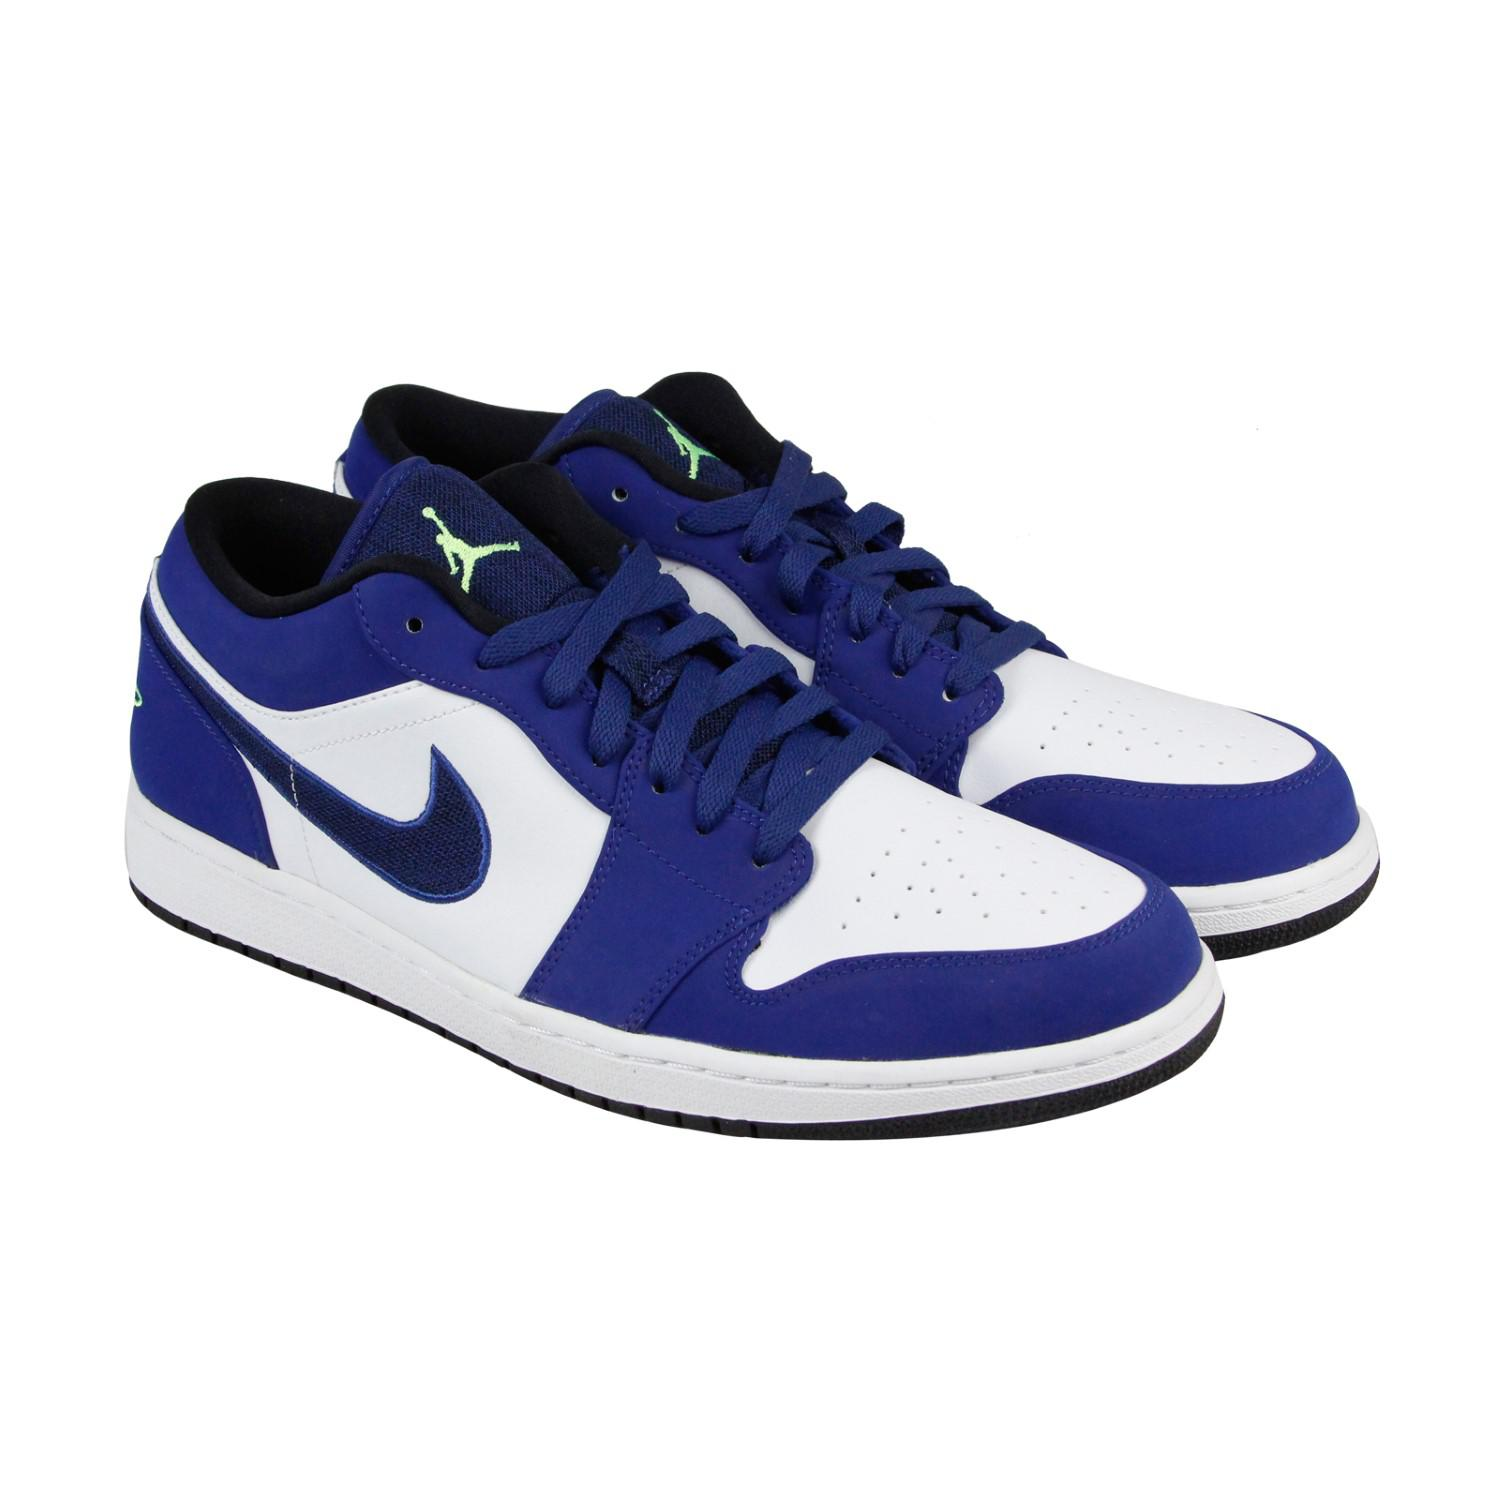 9c93b5a9ba30 ... ireland lyst nike air jordan 1 low insignia blue ghost green wolf grey  3cef5 b34ab